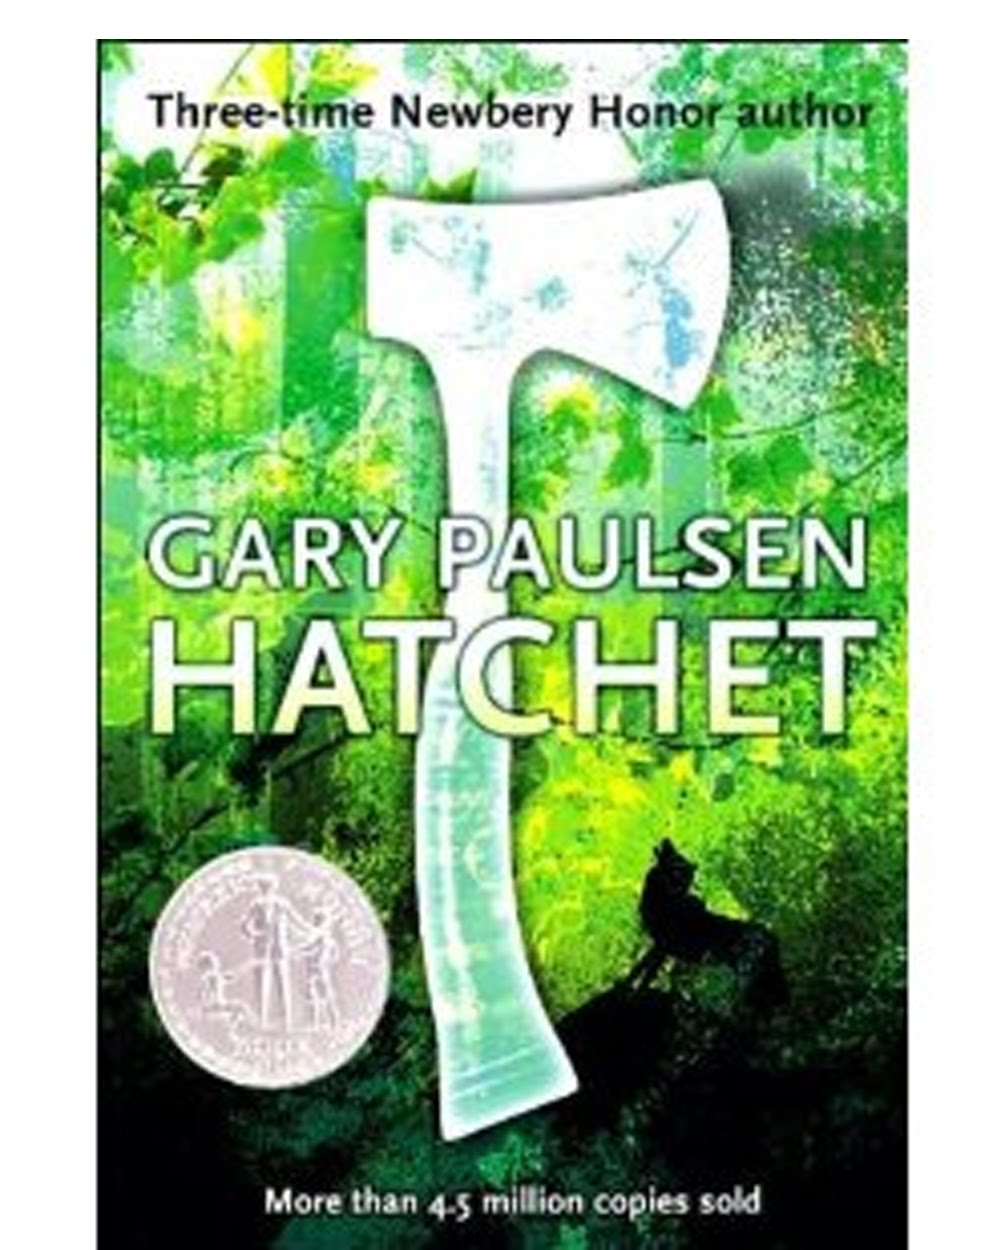 a report on the book hatchet by gary paulsen Then you should definitely read hatchet, a book by gary paulsen part of the report was to write a letter to the author telling him or her what you liked and/ or.